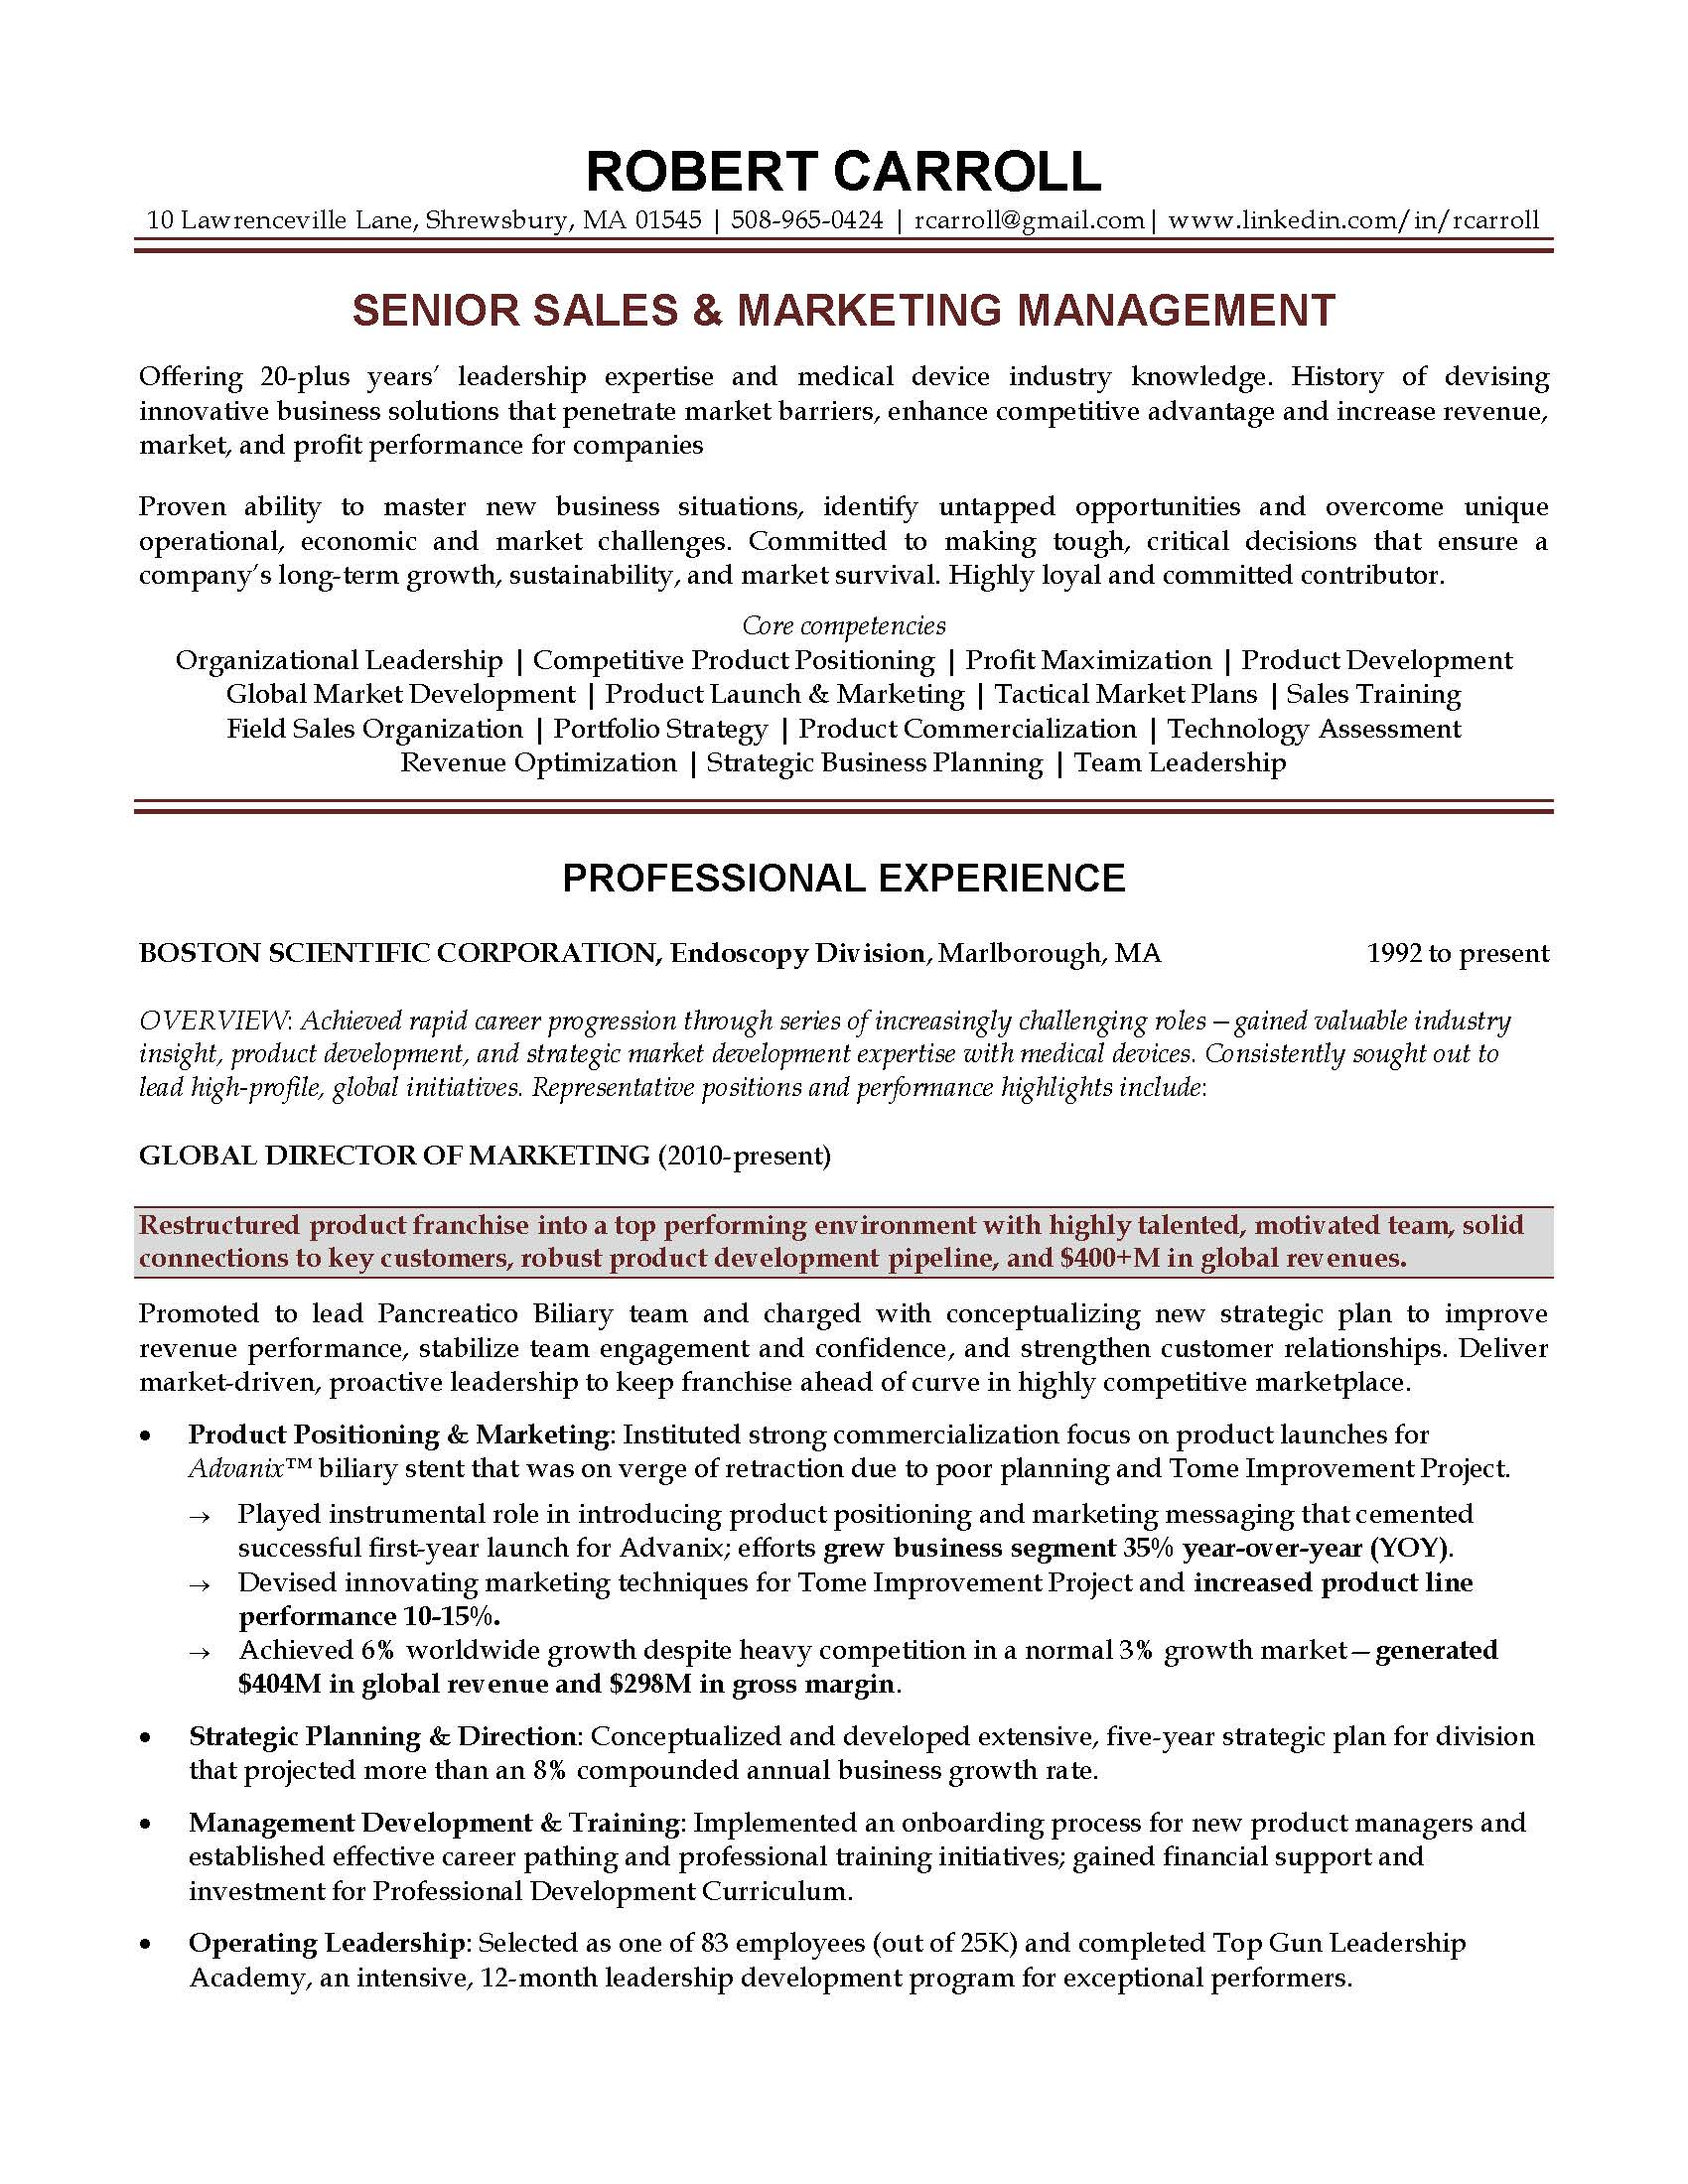 Sales - Marketing Executive Resume Sampl